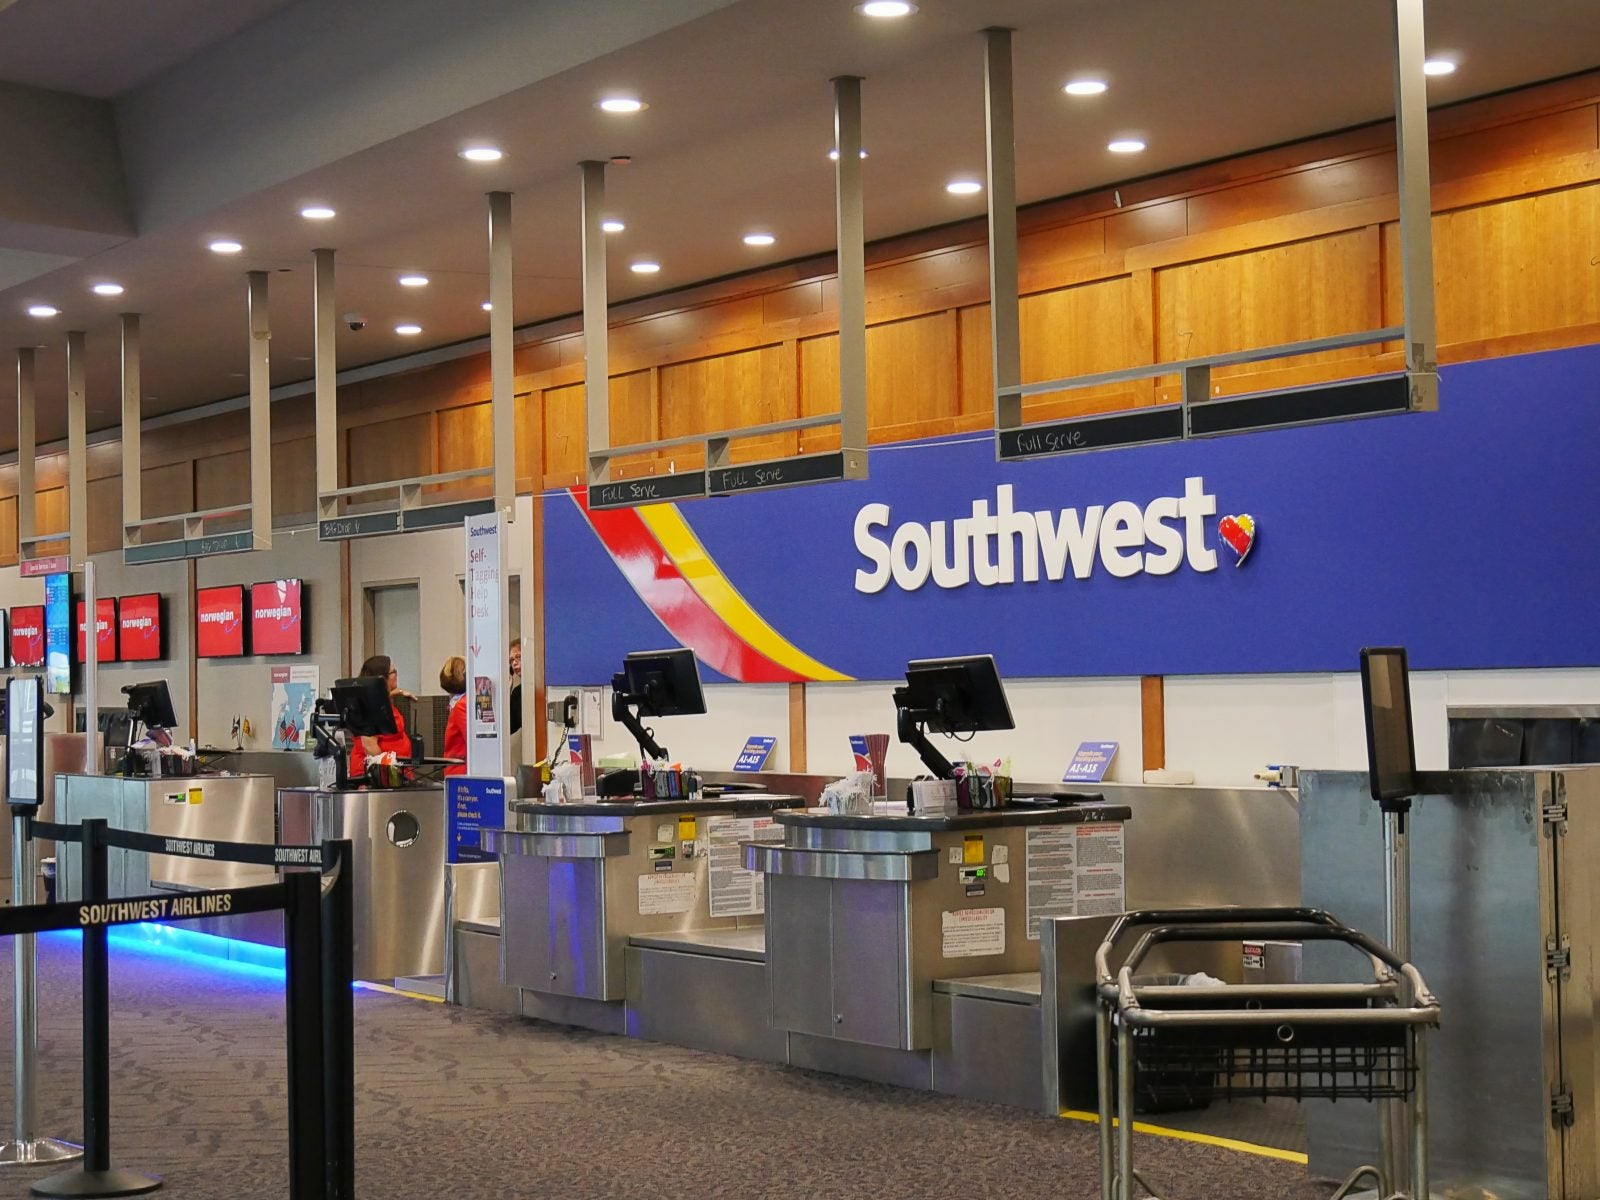 Comparing all 5 Southwest credit cards: Here's how to determine which one's right for you